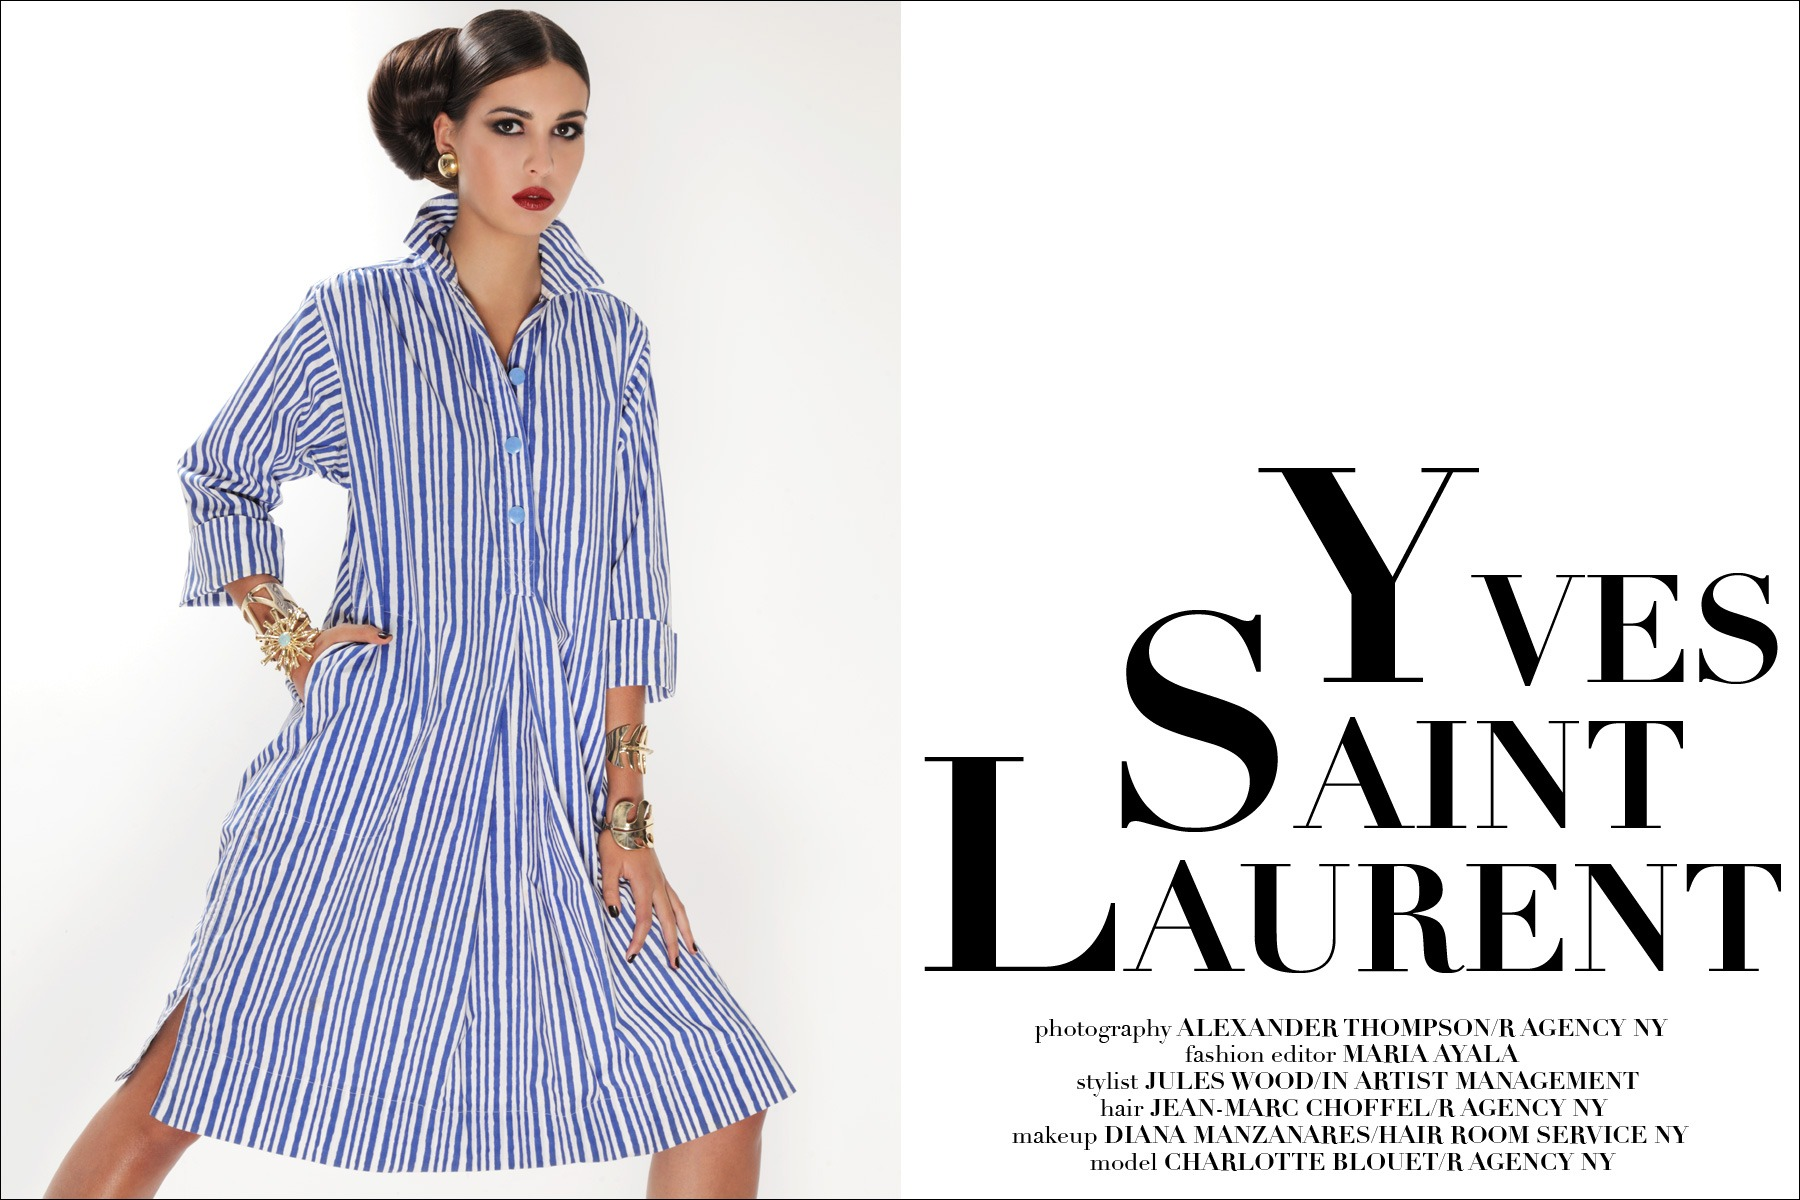 French model Charlotte Blouet photographed in vintage YSL by Alexander Thompson for Ponyboy Magazine in New York City.